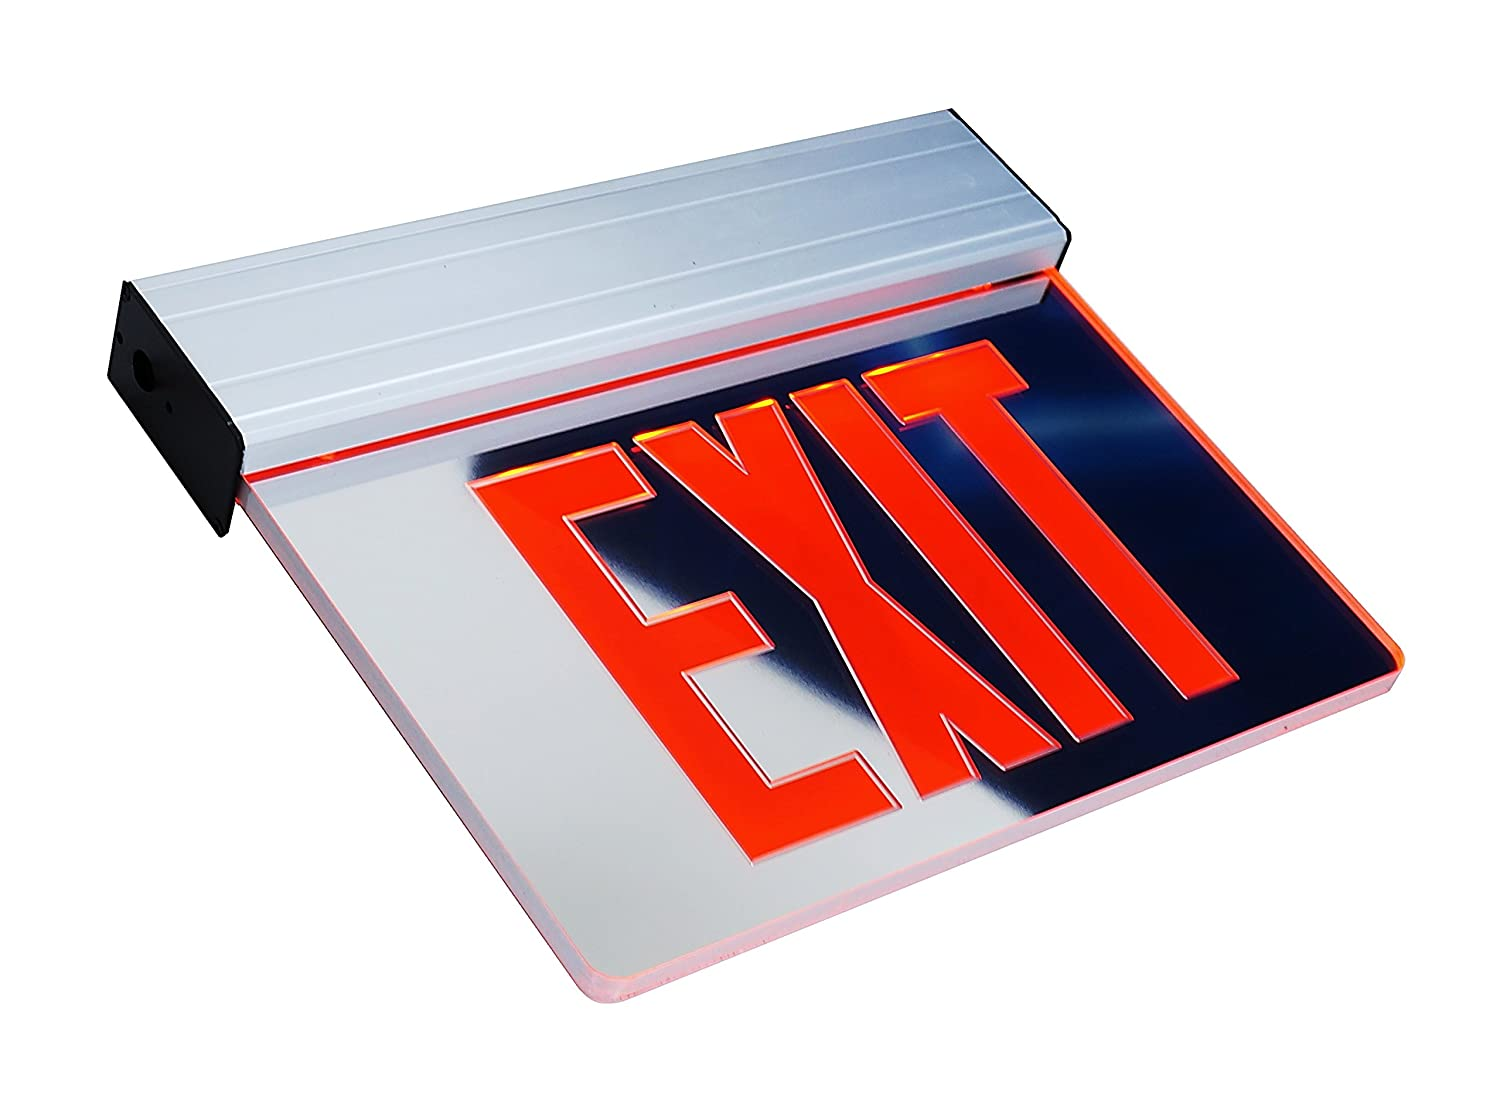 Nicor Lighting Edge Lit Led Emergency Exit Sign Mirrored With Red Wiring Diagram Lettering Exl2 10unv Al Mr R 2